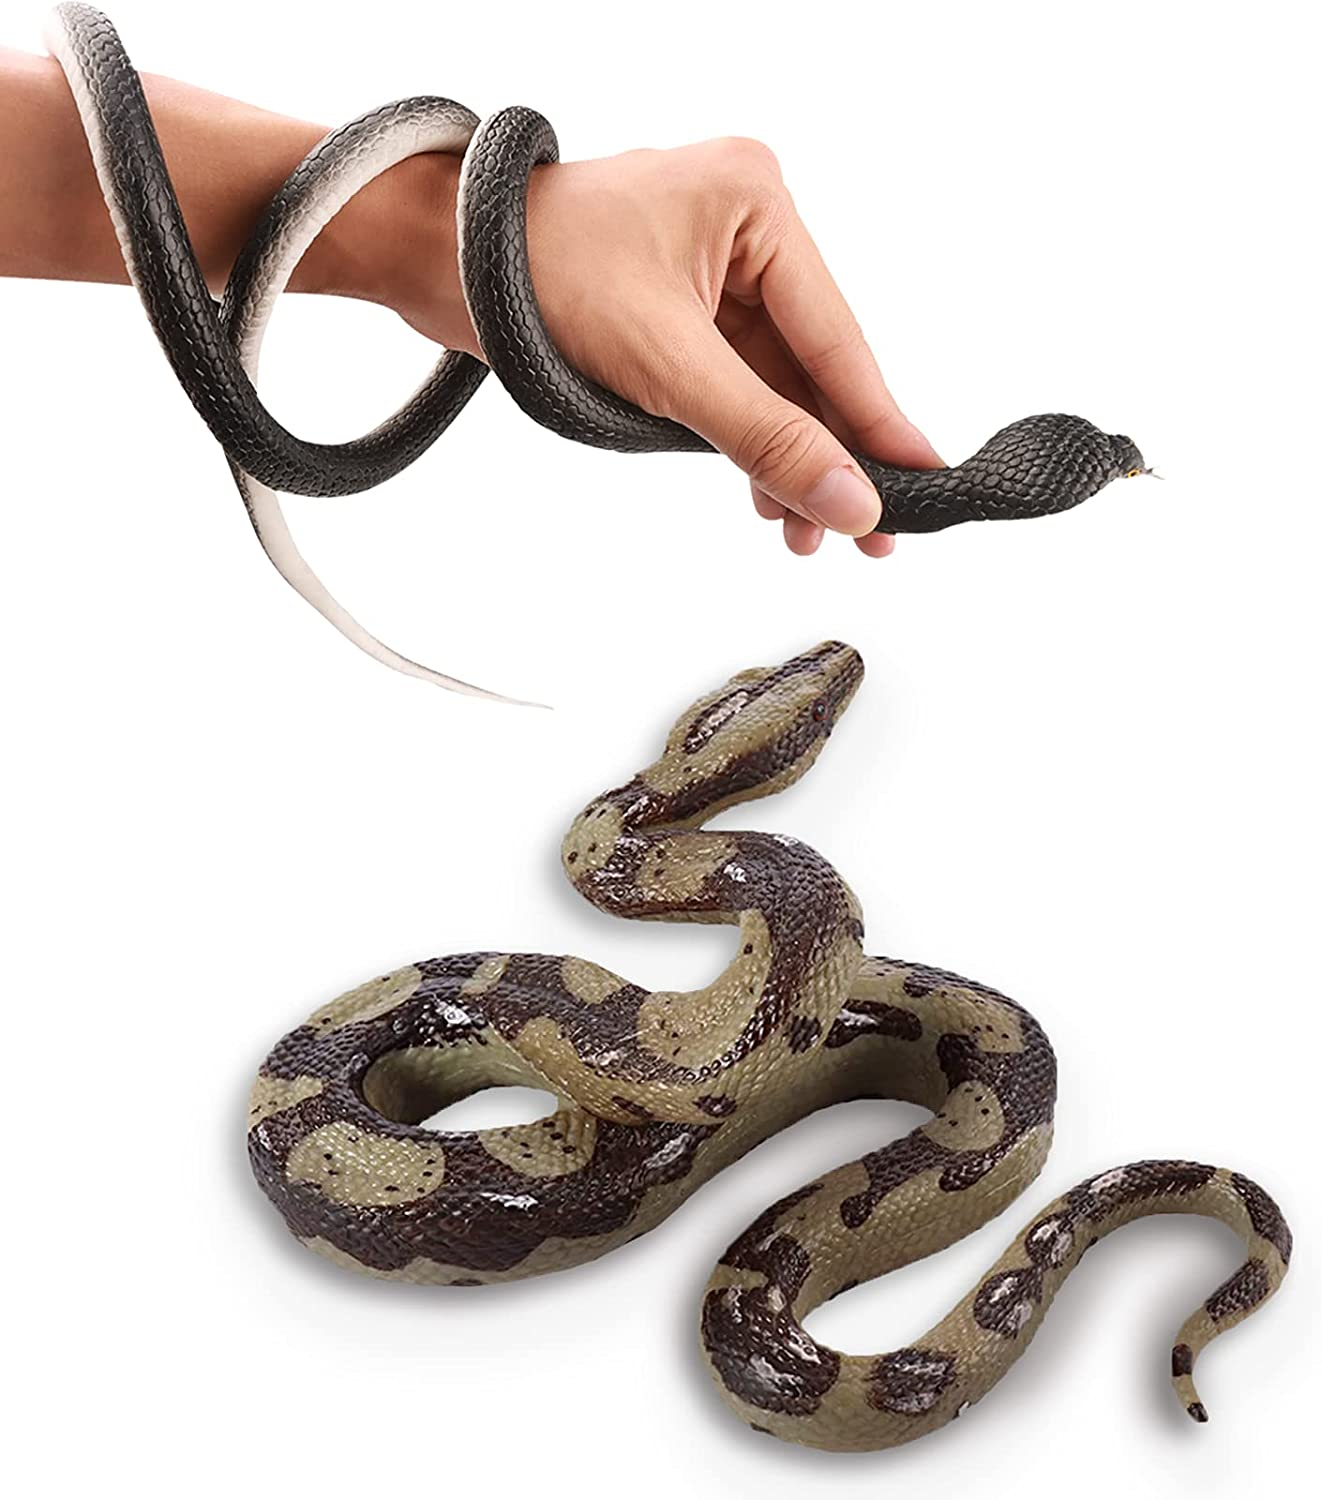 Monyus 2 Pack Realistic Rubber Snake Toys, 6 inch Prank Props and 47 inch Lifelike Wildlife Fake Snake for Halloween Party Scary Gift